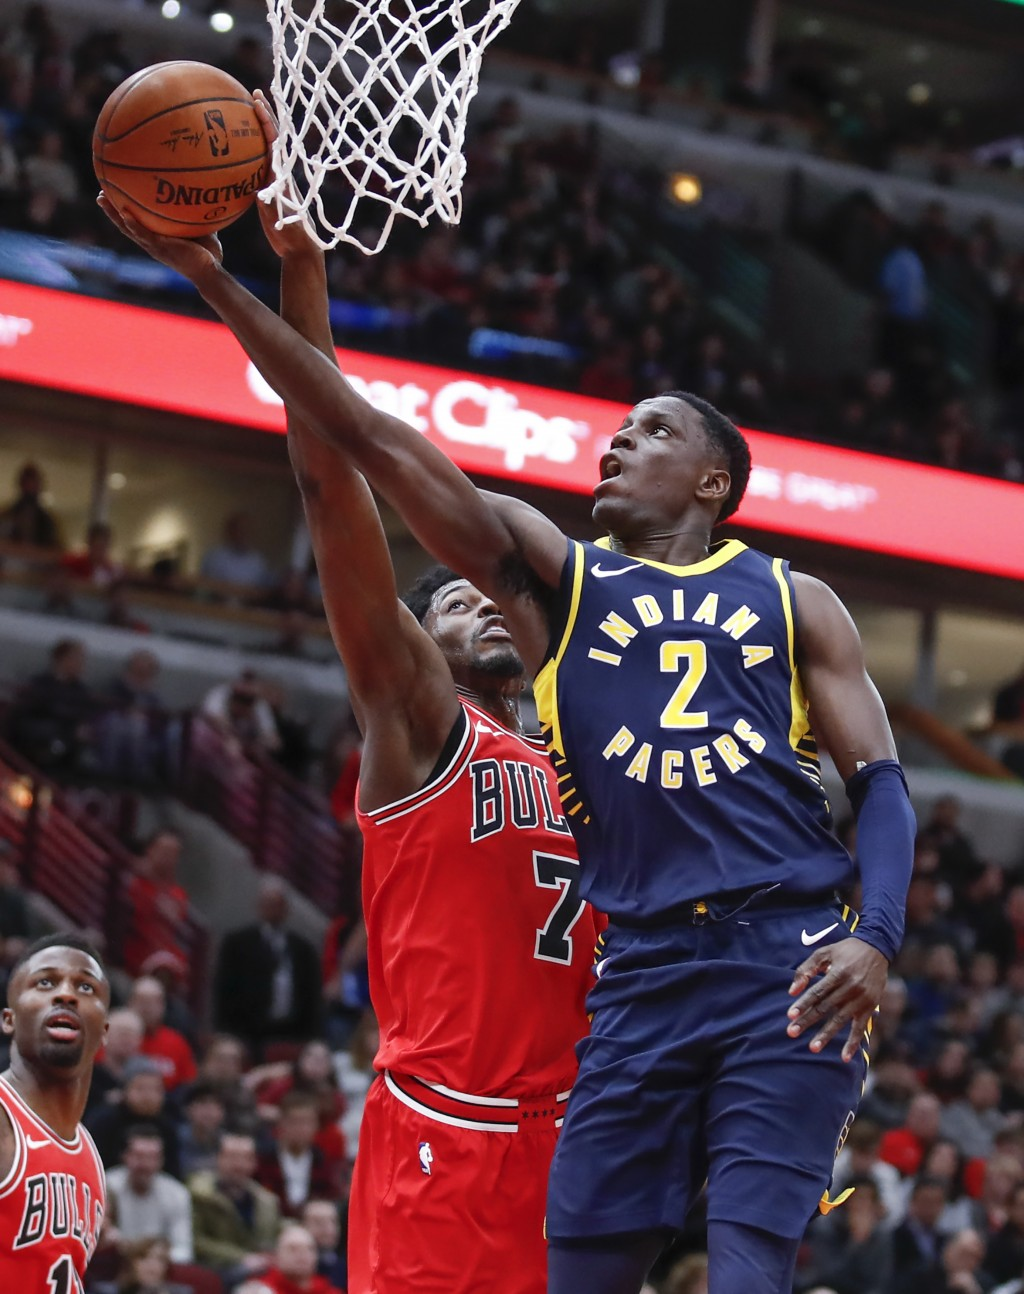 Indiana Pacers guard Darren Collison (2) goes to the basket against Chicago Bulls guard Justin Holiday (7) during the first half of an NBA basketball ...